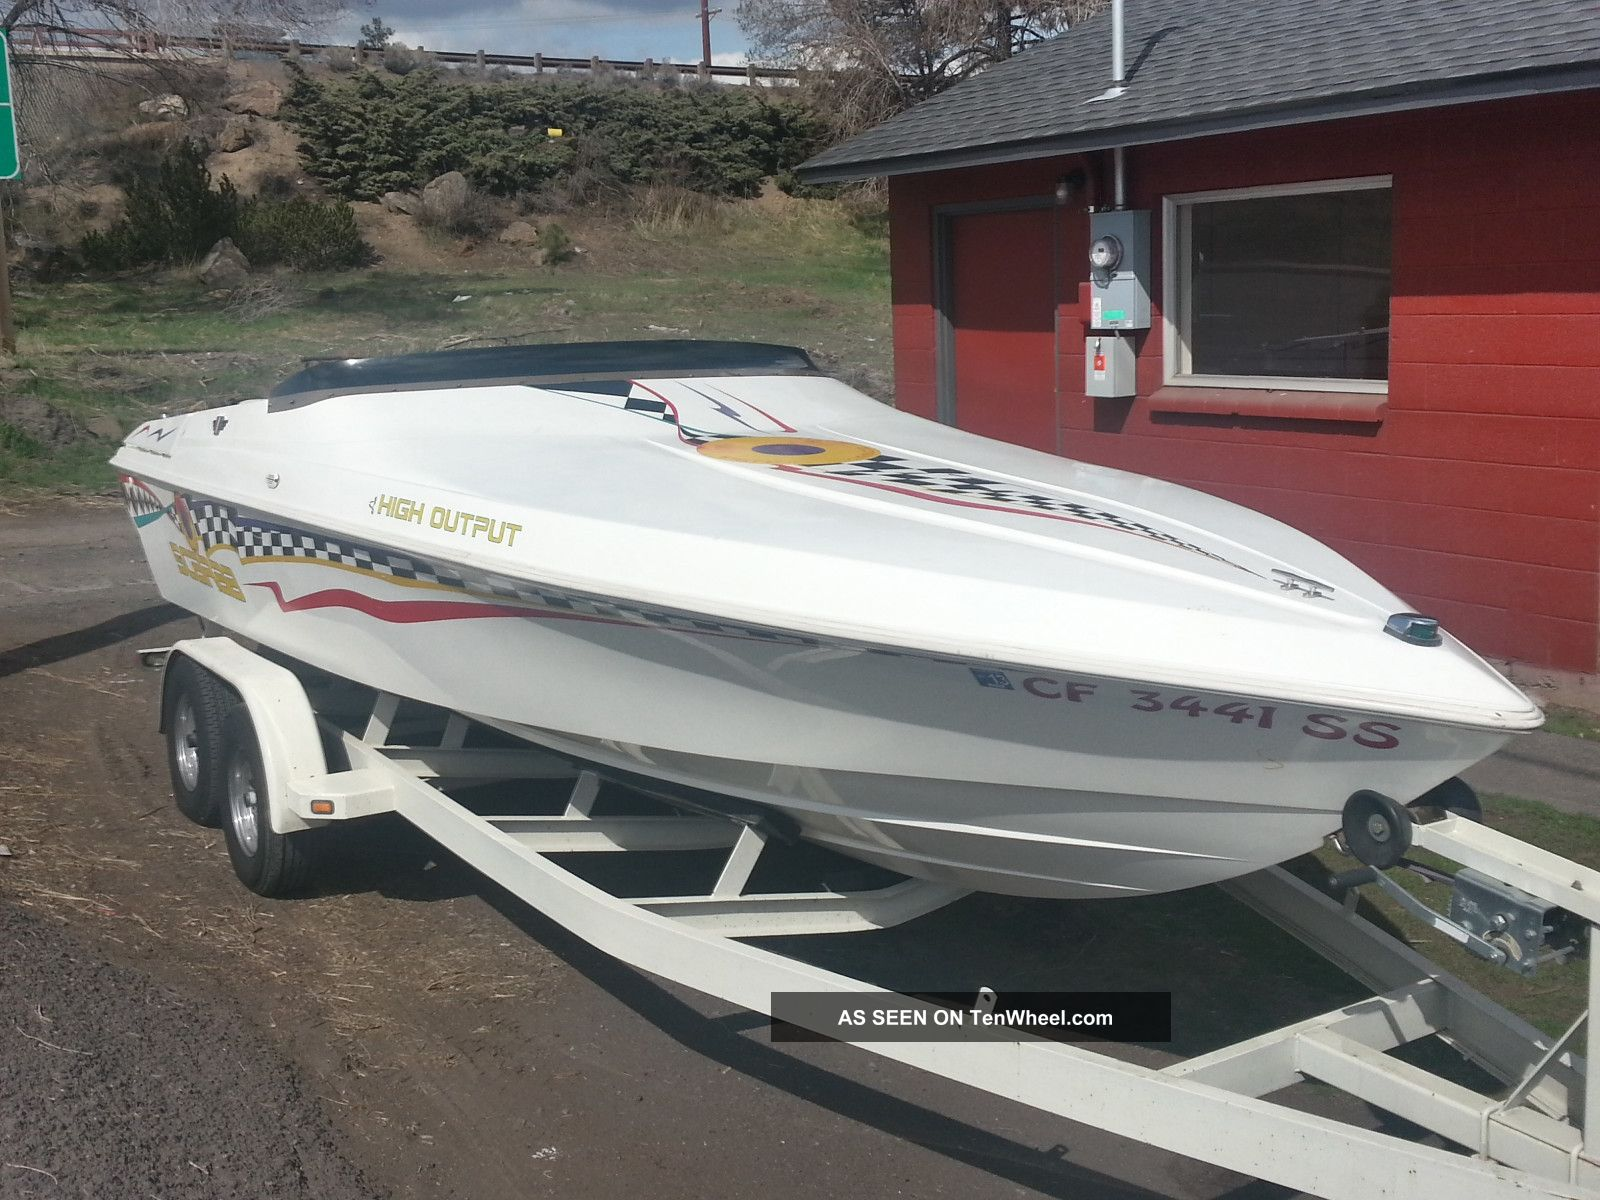 1995 Wellcraft Scarab Other Powerboats photo